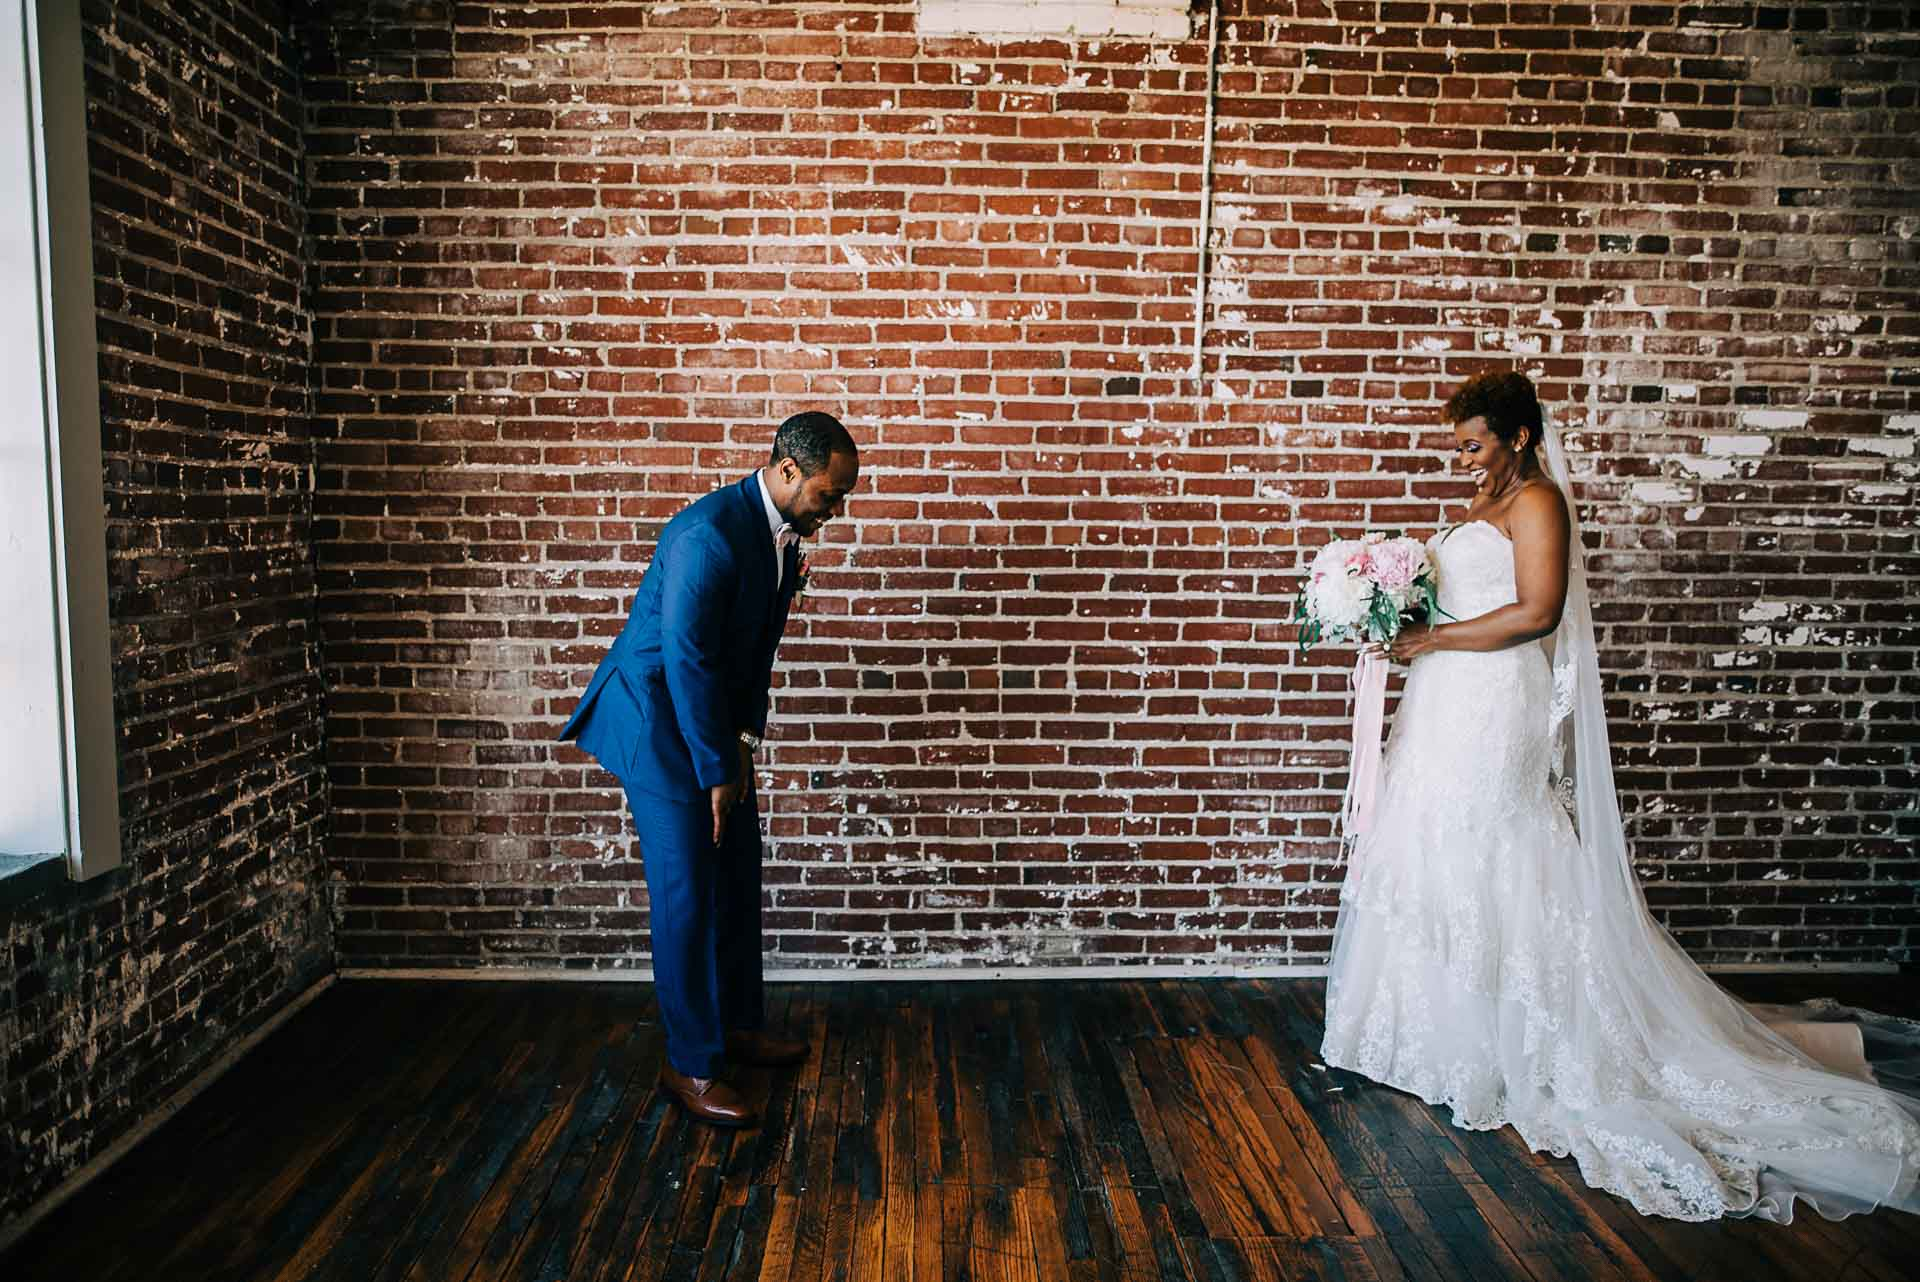 409 south main first look wedding photography